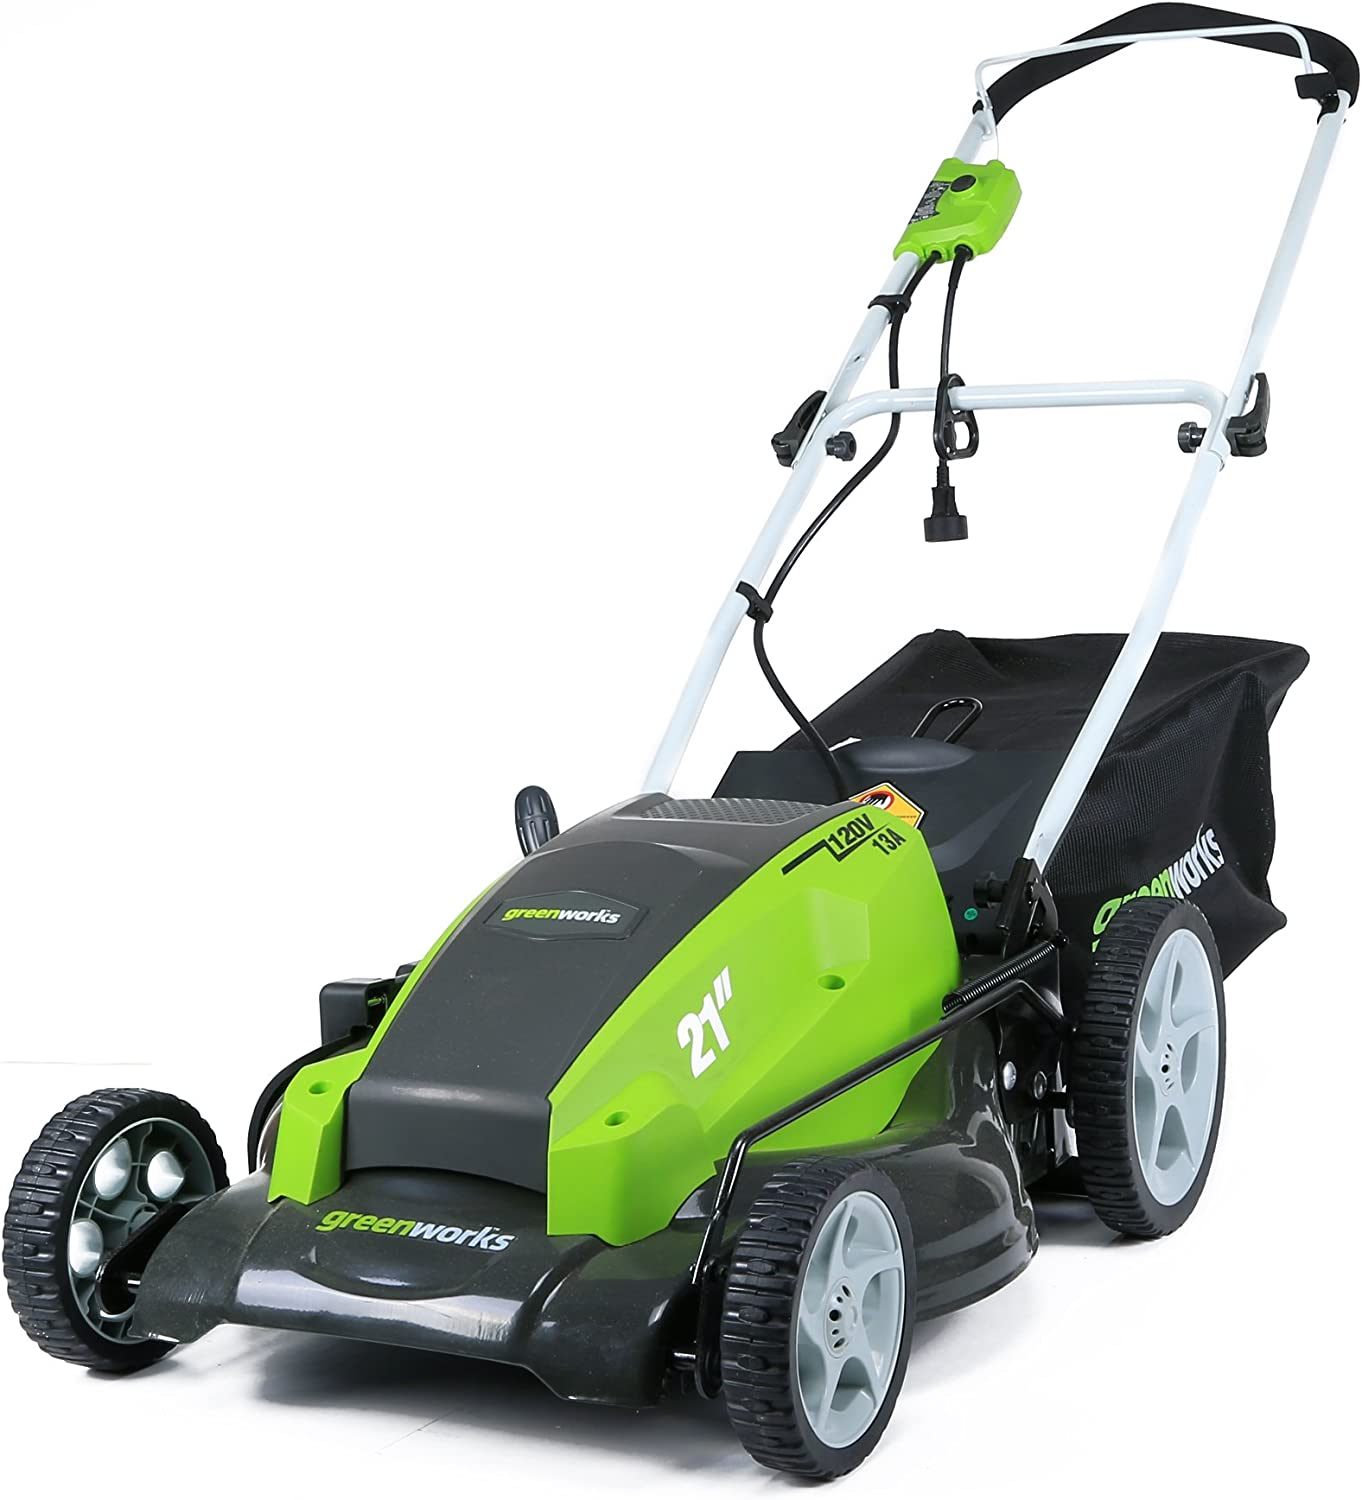 Greenworks 25112 Electric Lawn Mower